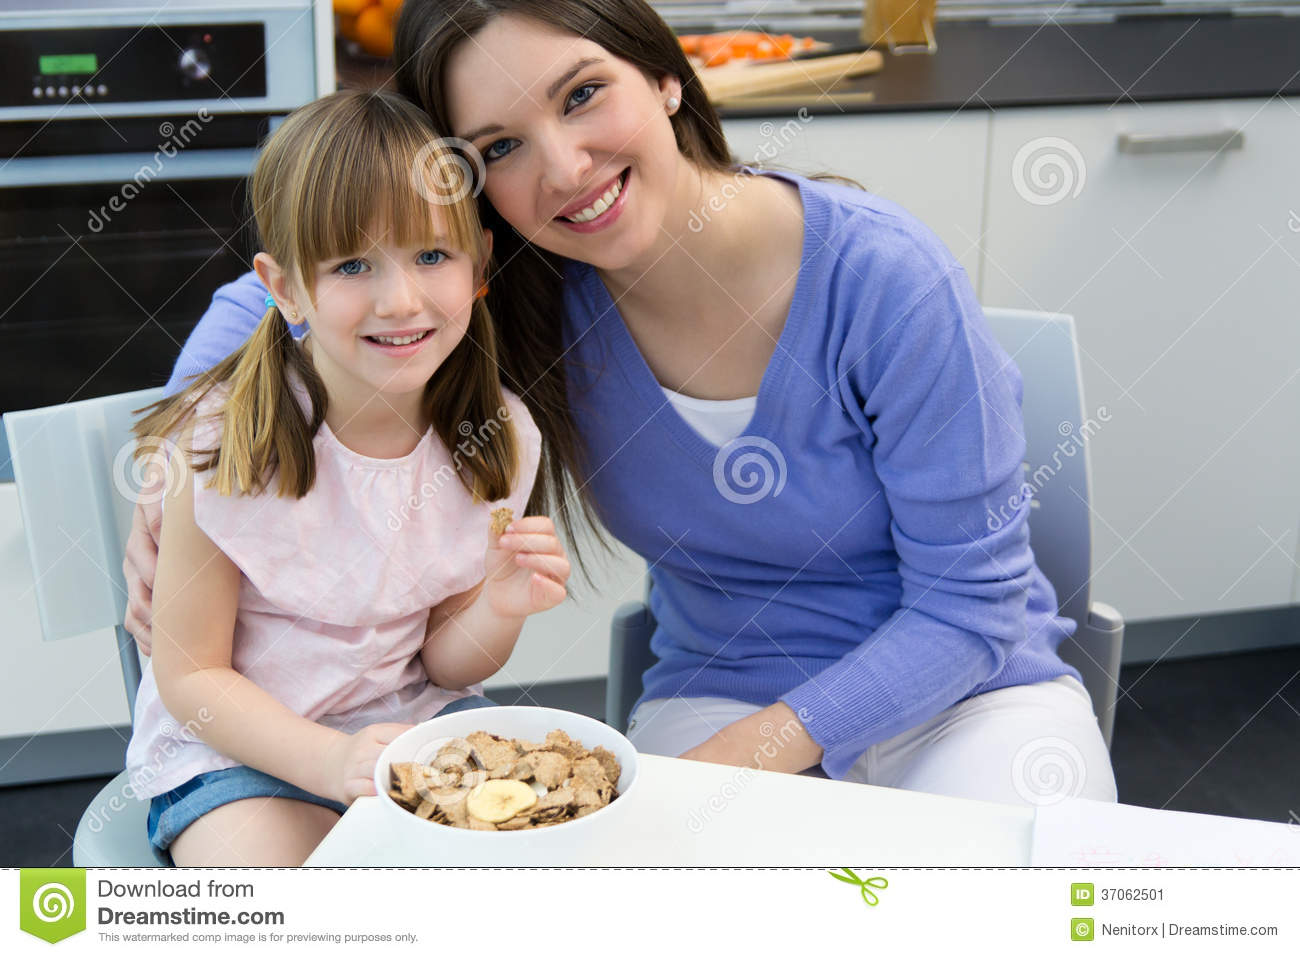 Child Eating Cereals With Her Mom In The Kitchen Stock